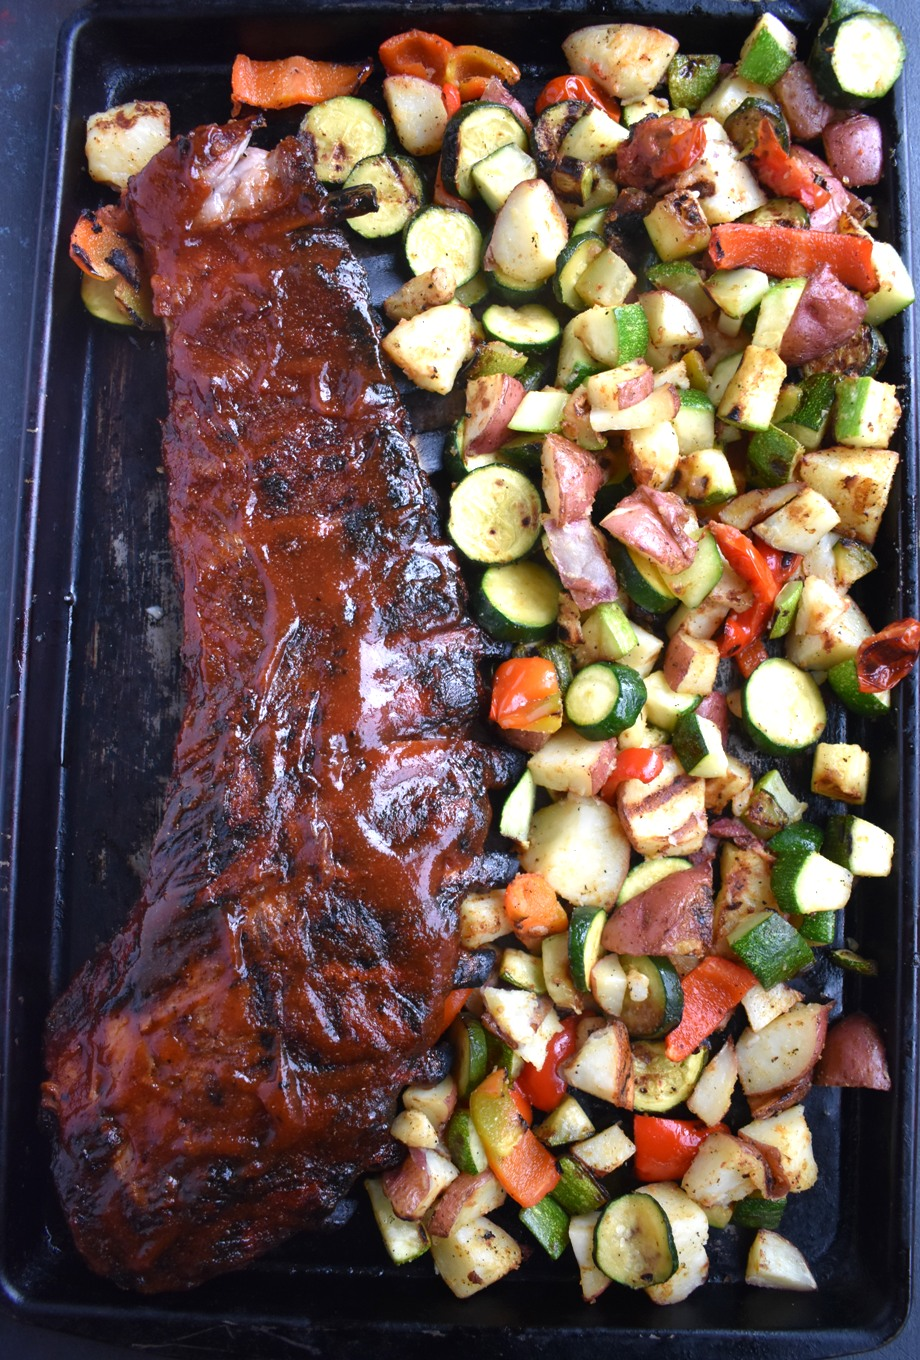 rack of ribs and grilled vegetables